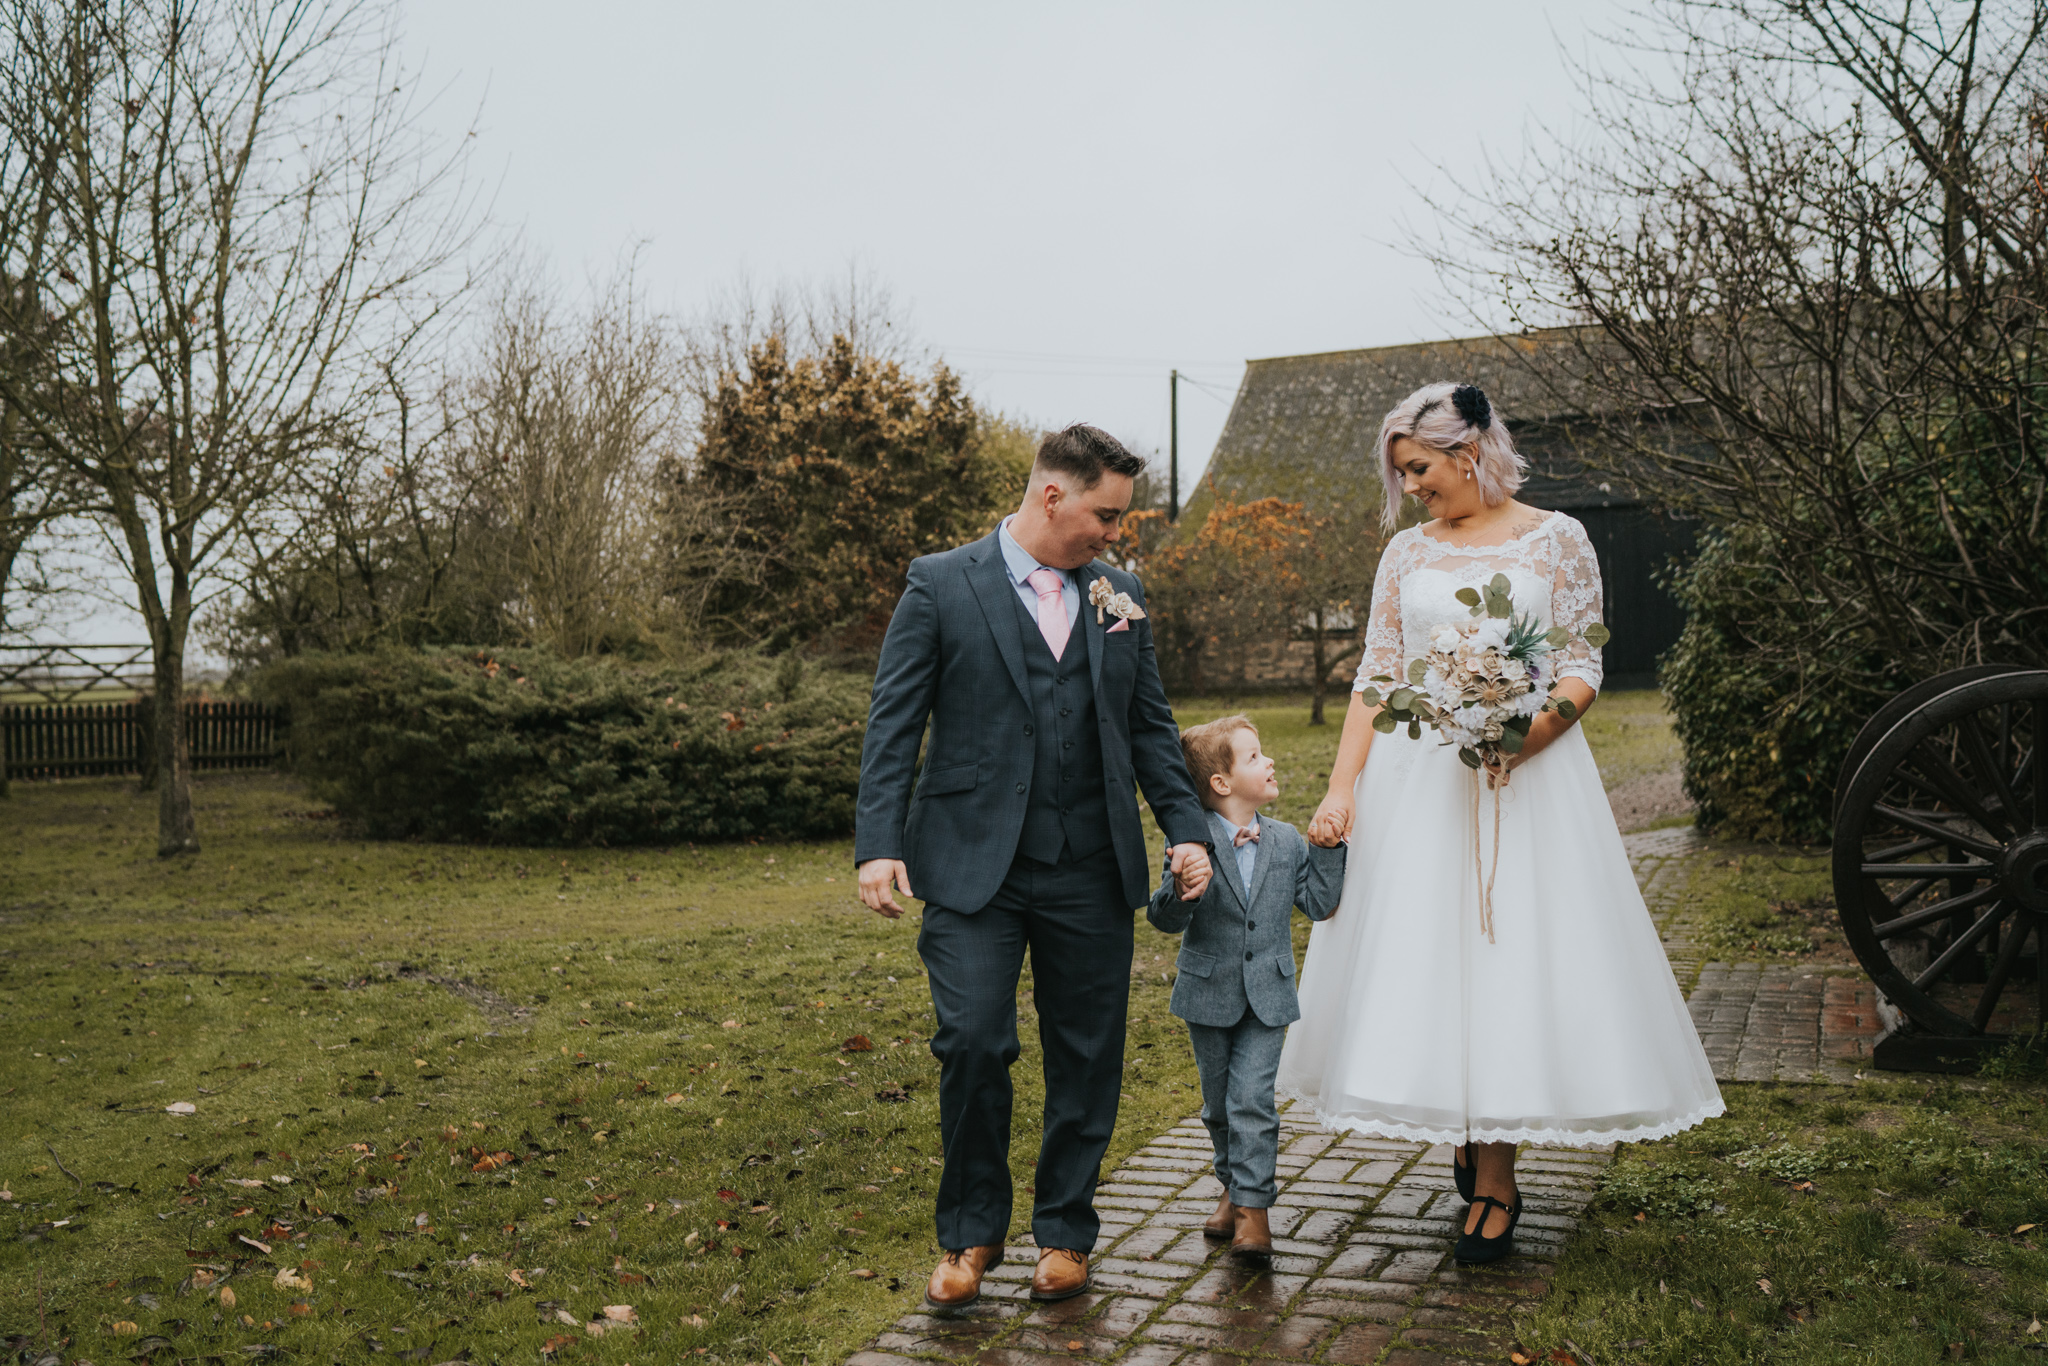 rhia-james-rustic-crabbs-barn-vintage-50s-retro-wedding-grace-elizabeth-colchester-essex-alternative-relaxed-wedding-family-photography-devon-suffolk-norfolk-essex (90 of 138).jpg